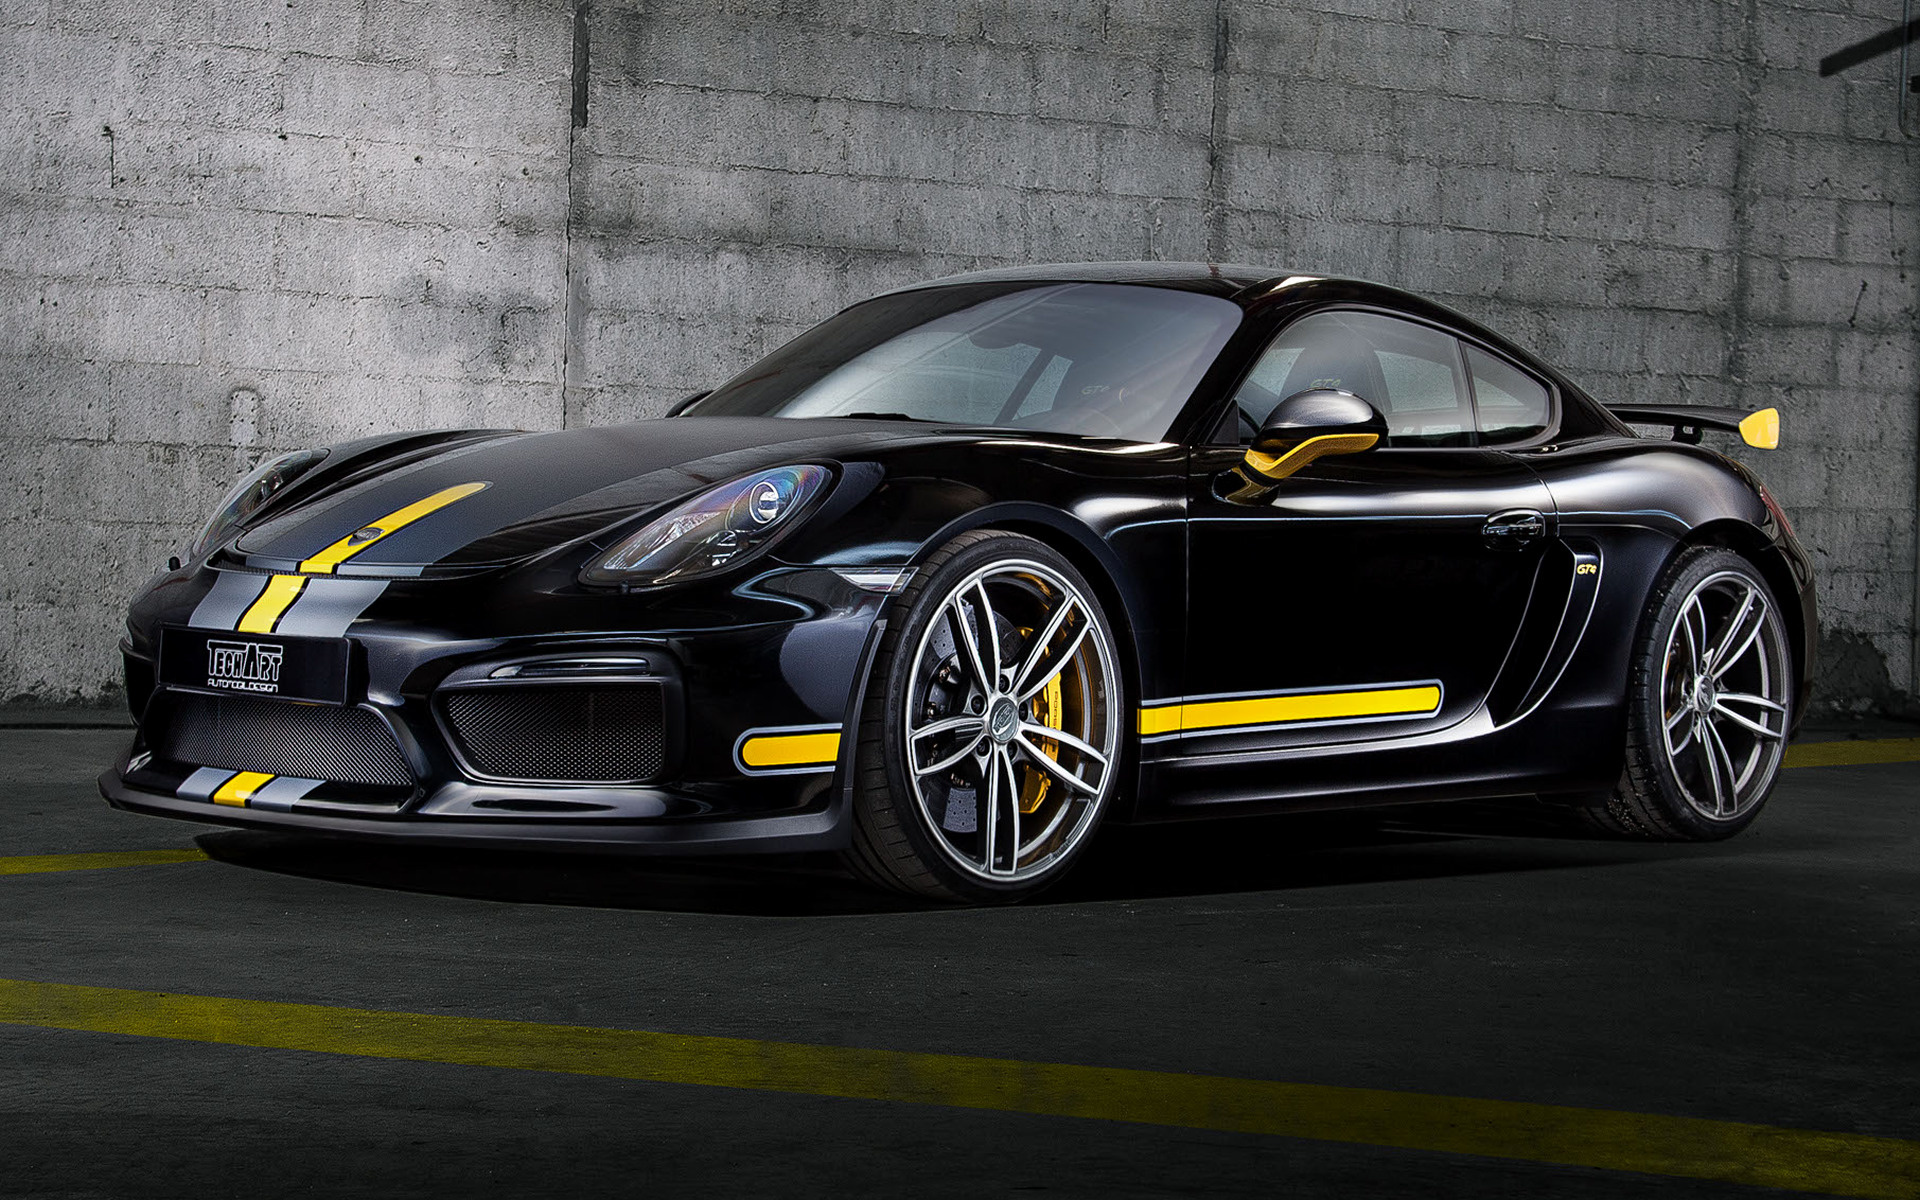 porsche cayman gt4 by techart 2016 wallpapers and hd. Black Bedroom Furniture Sets. Home Design Ideas